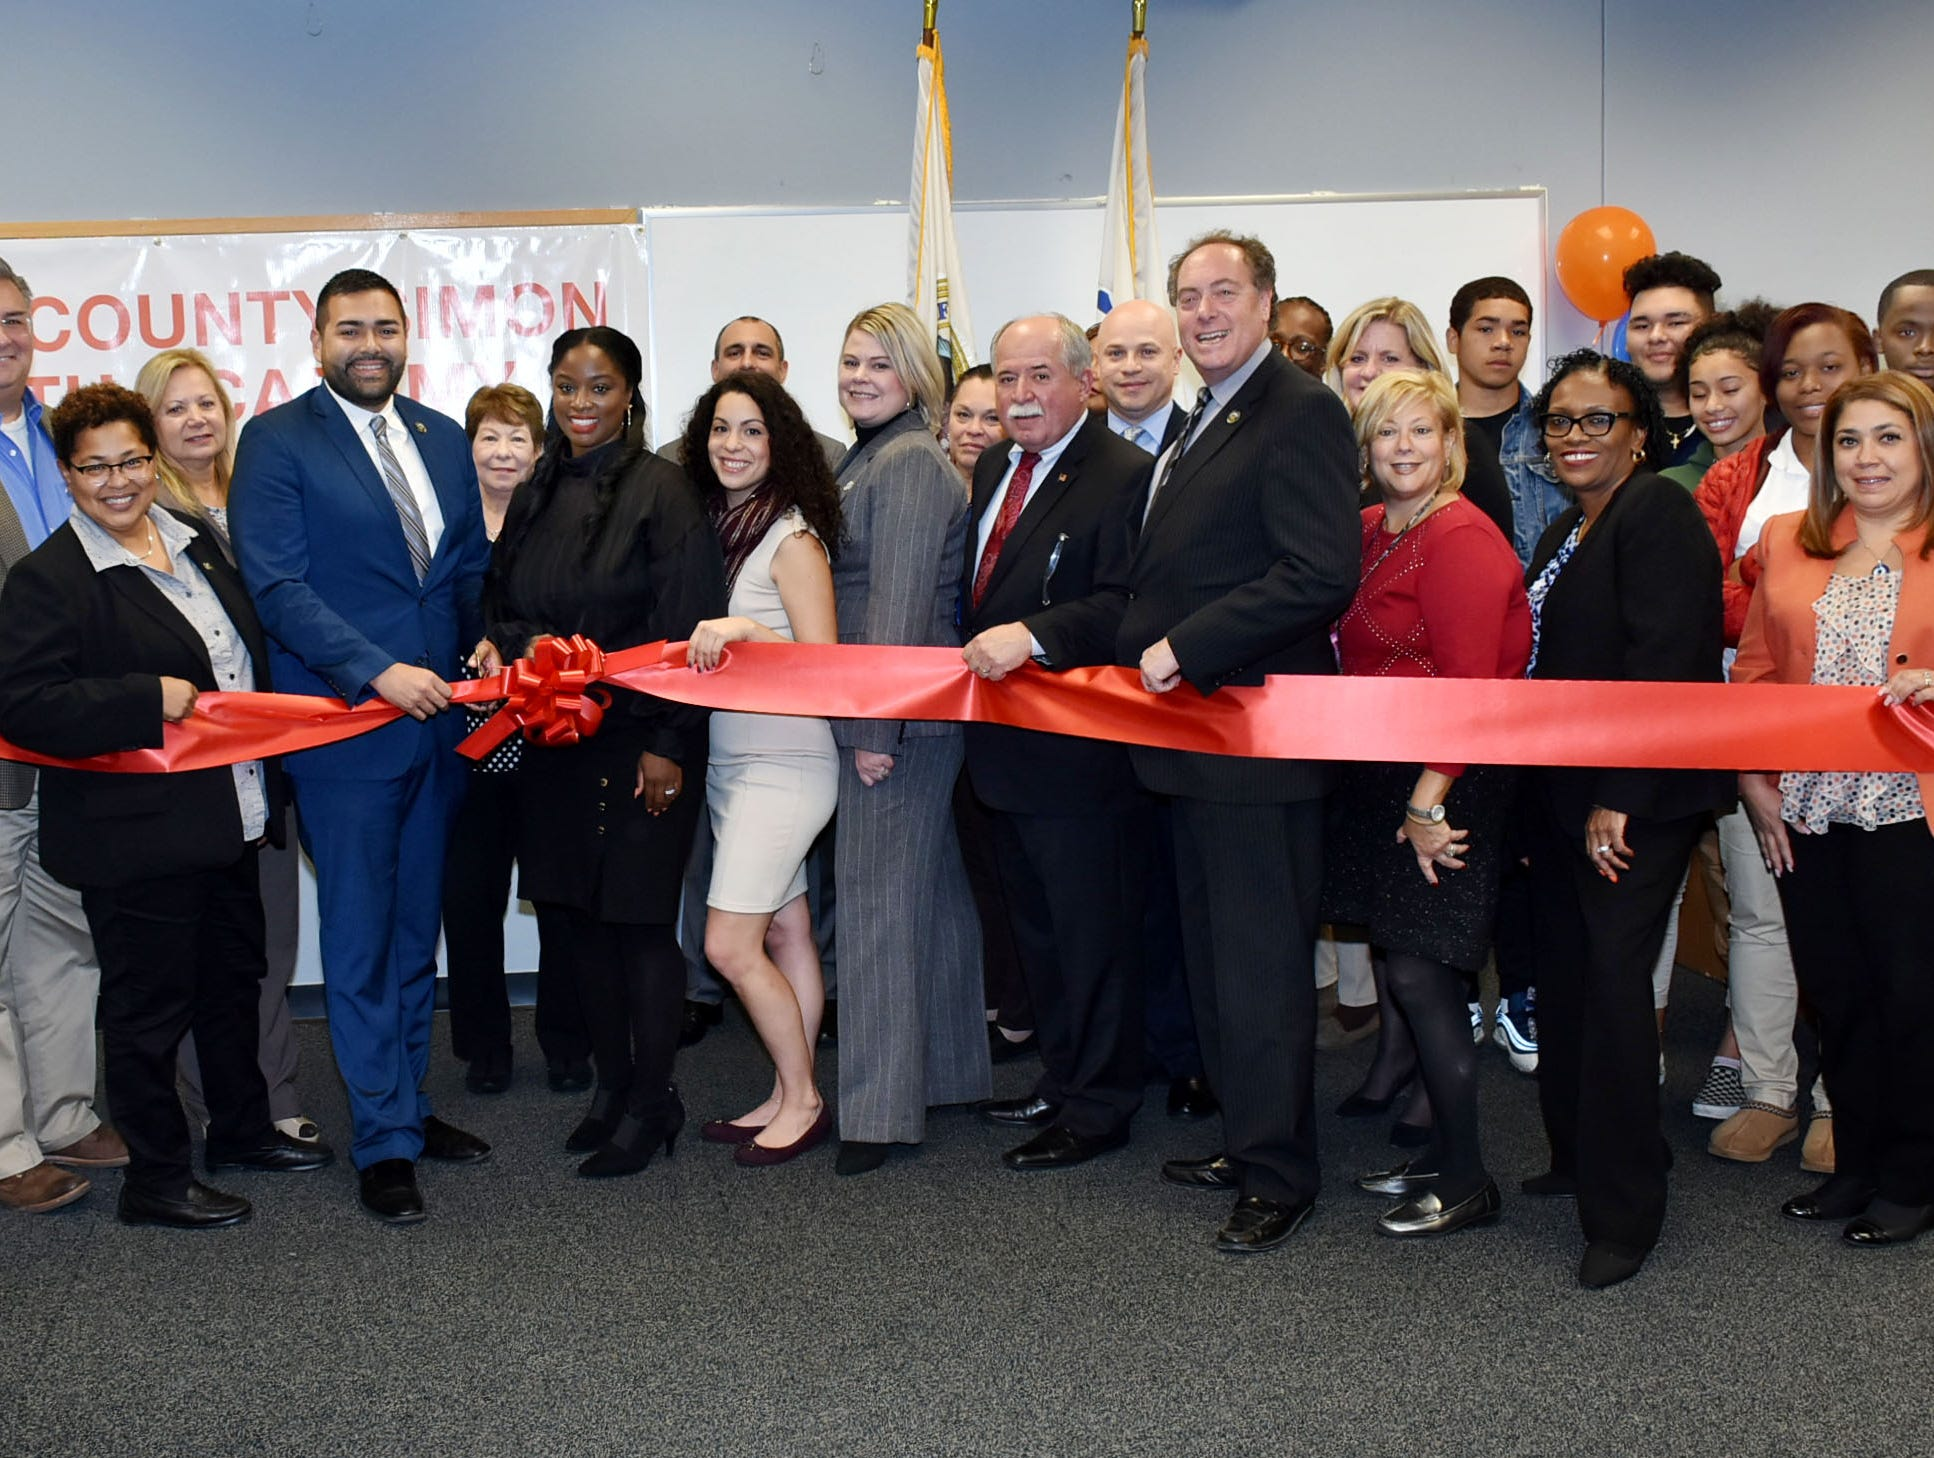 First Simon Youth Academy in the State of New Jersey Opens Union County at The Mills at Jersey Gardens Mall, Giving At-Risk County Students Opportunity to Earn a High School Diploma.